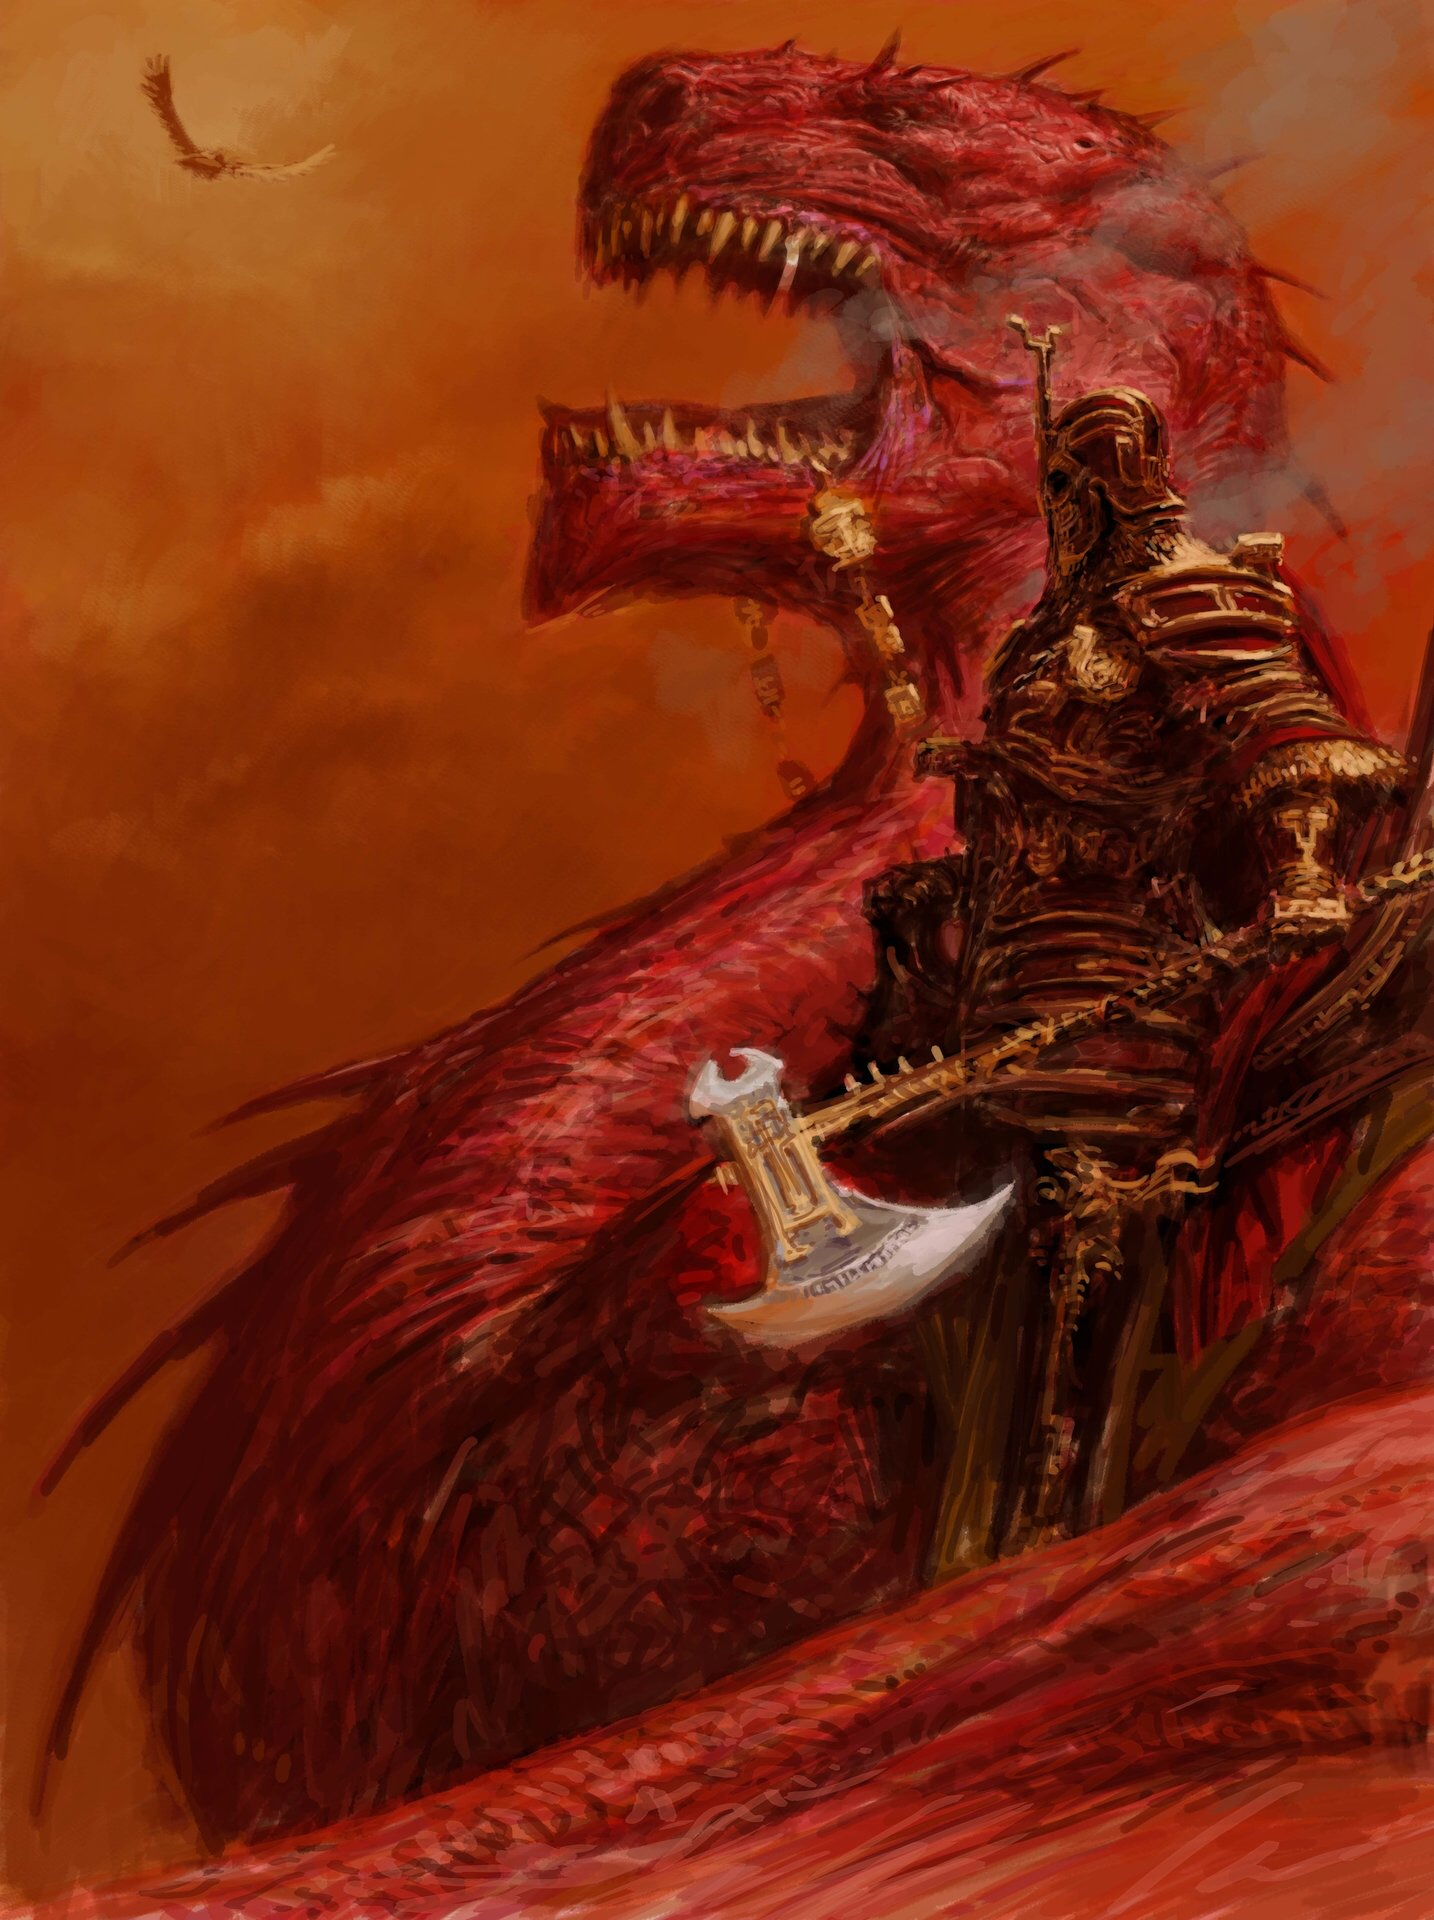 Art Illustration Amazing Fantasy Illustrations By Adrian Smith | Illustrator